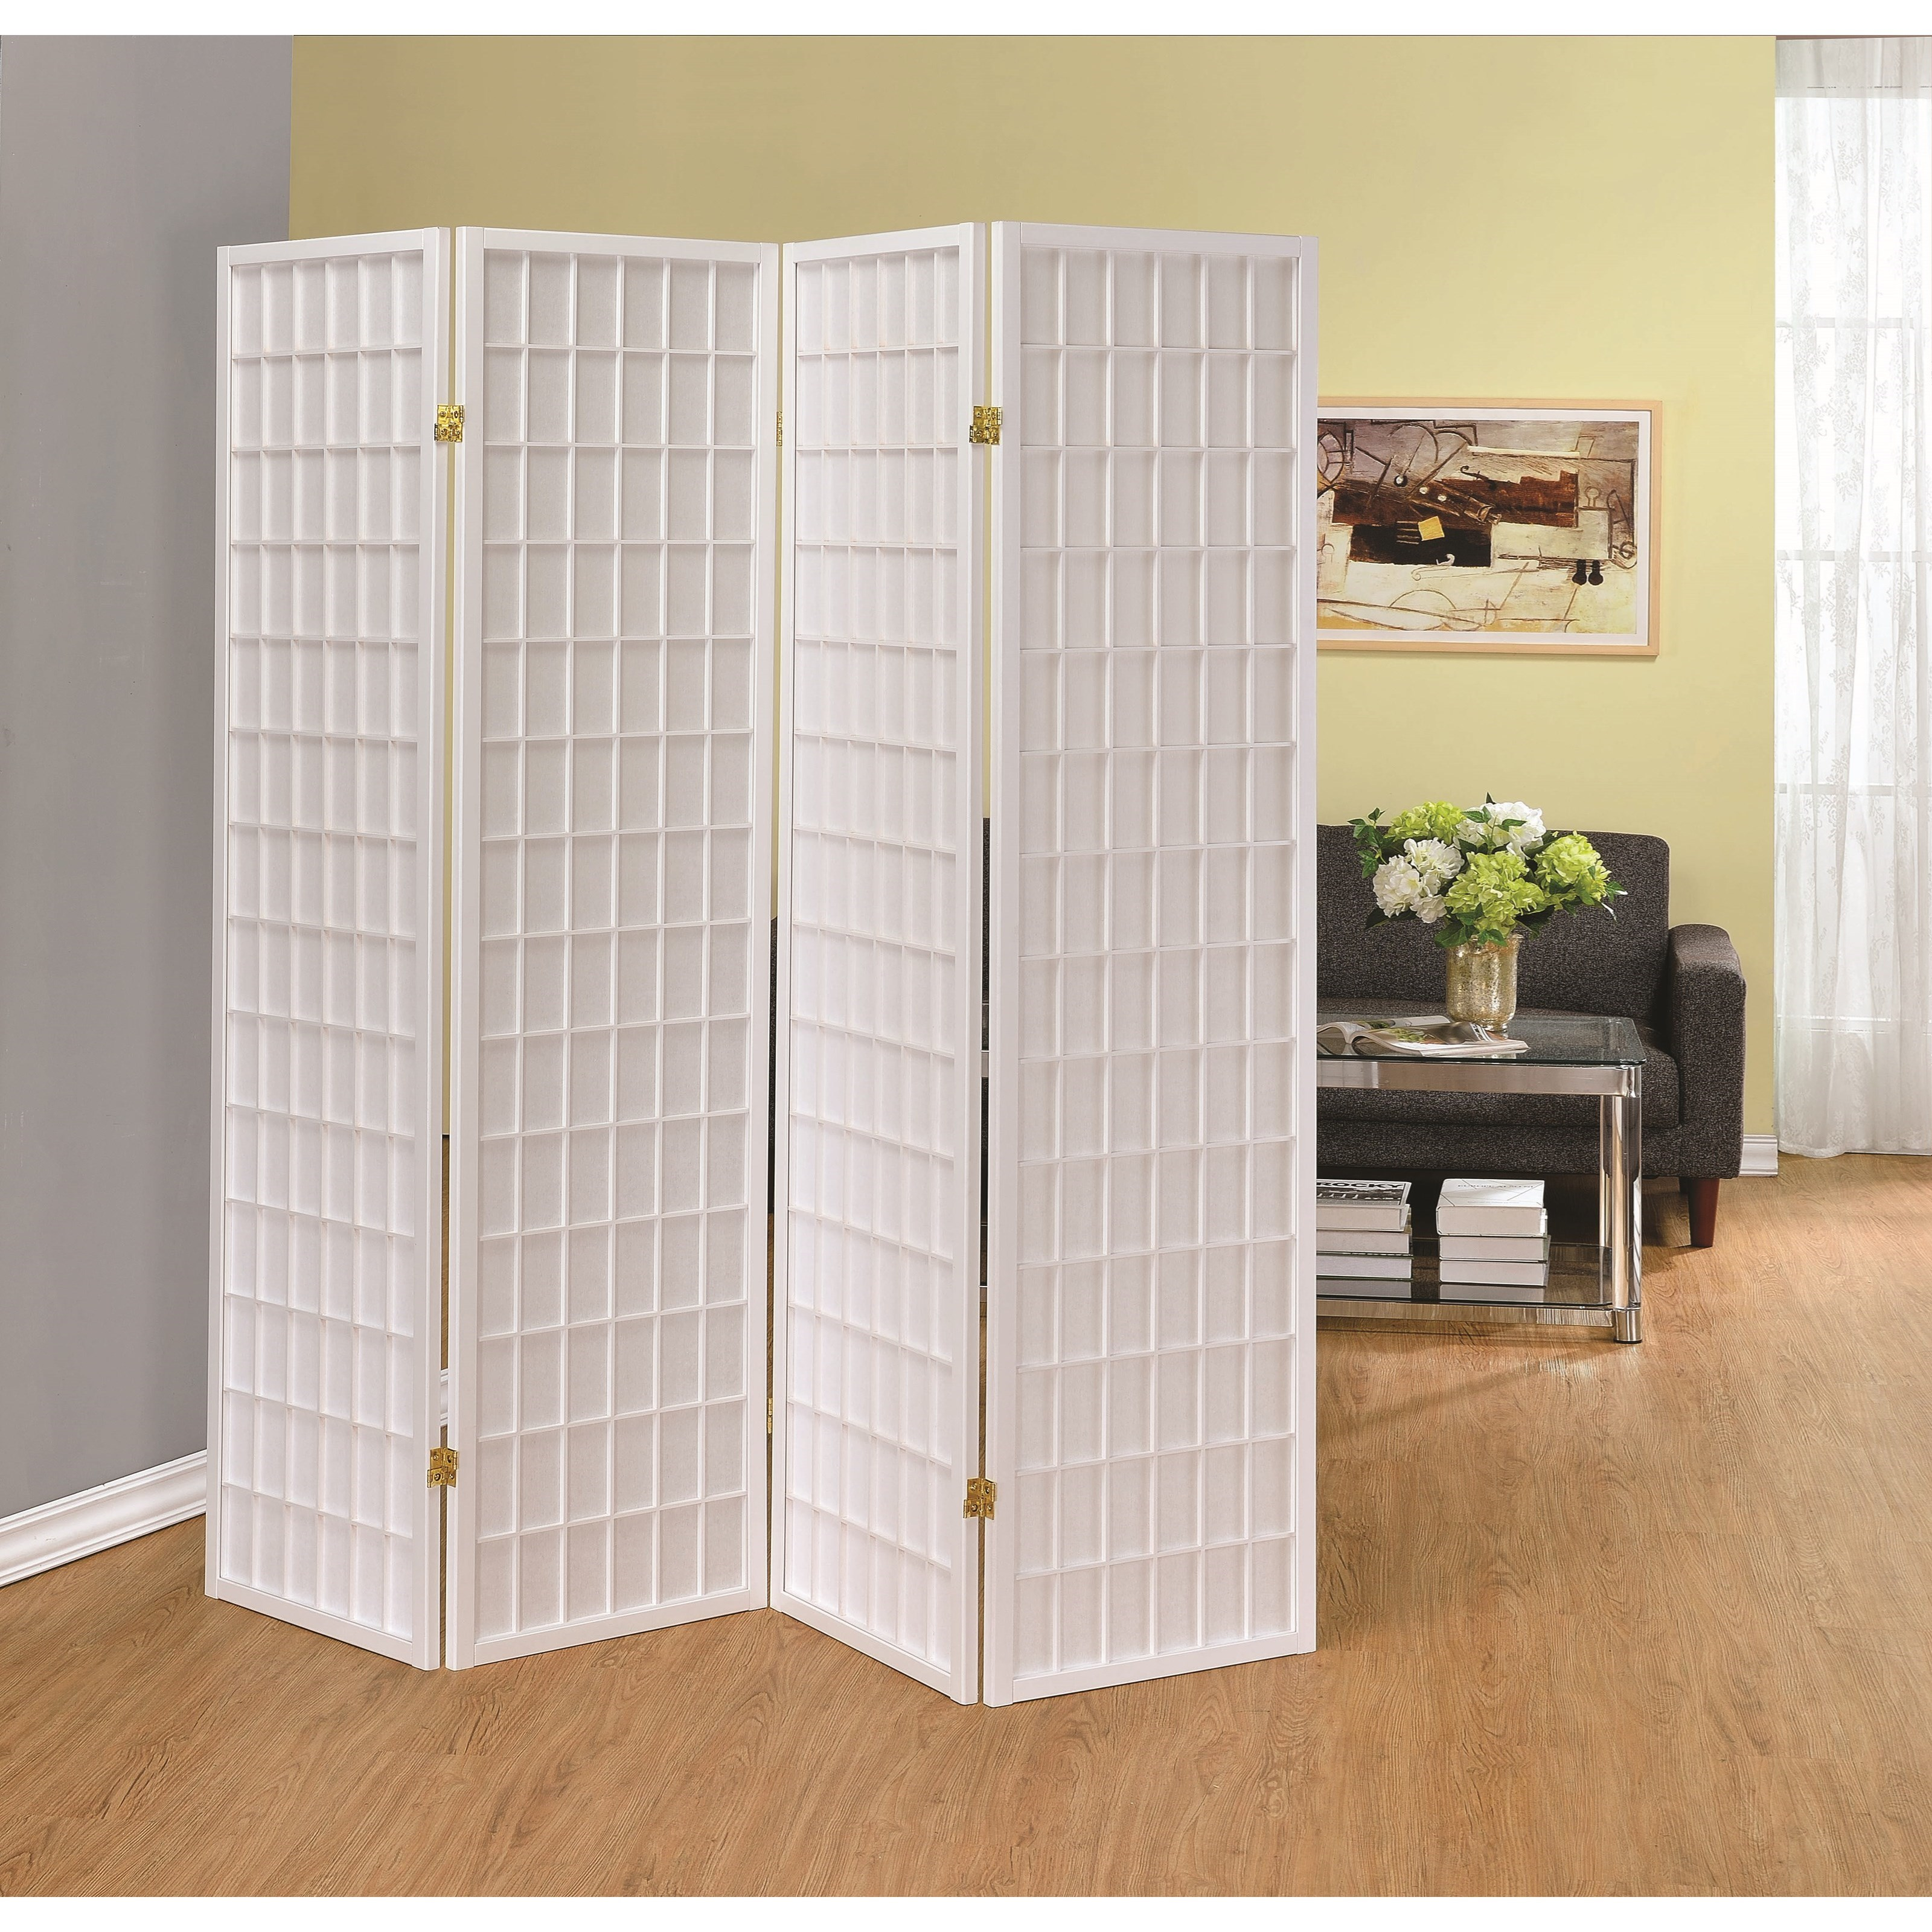 Coaster folding screens 902626 four panel white folding for Screens and room dividers